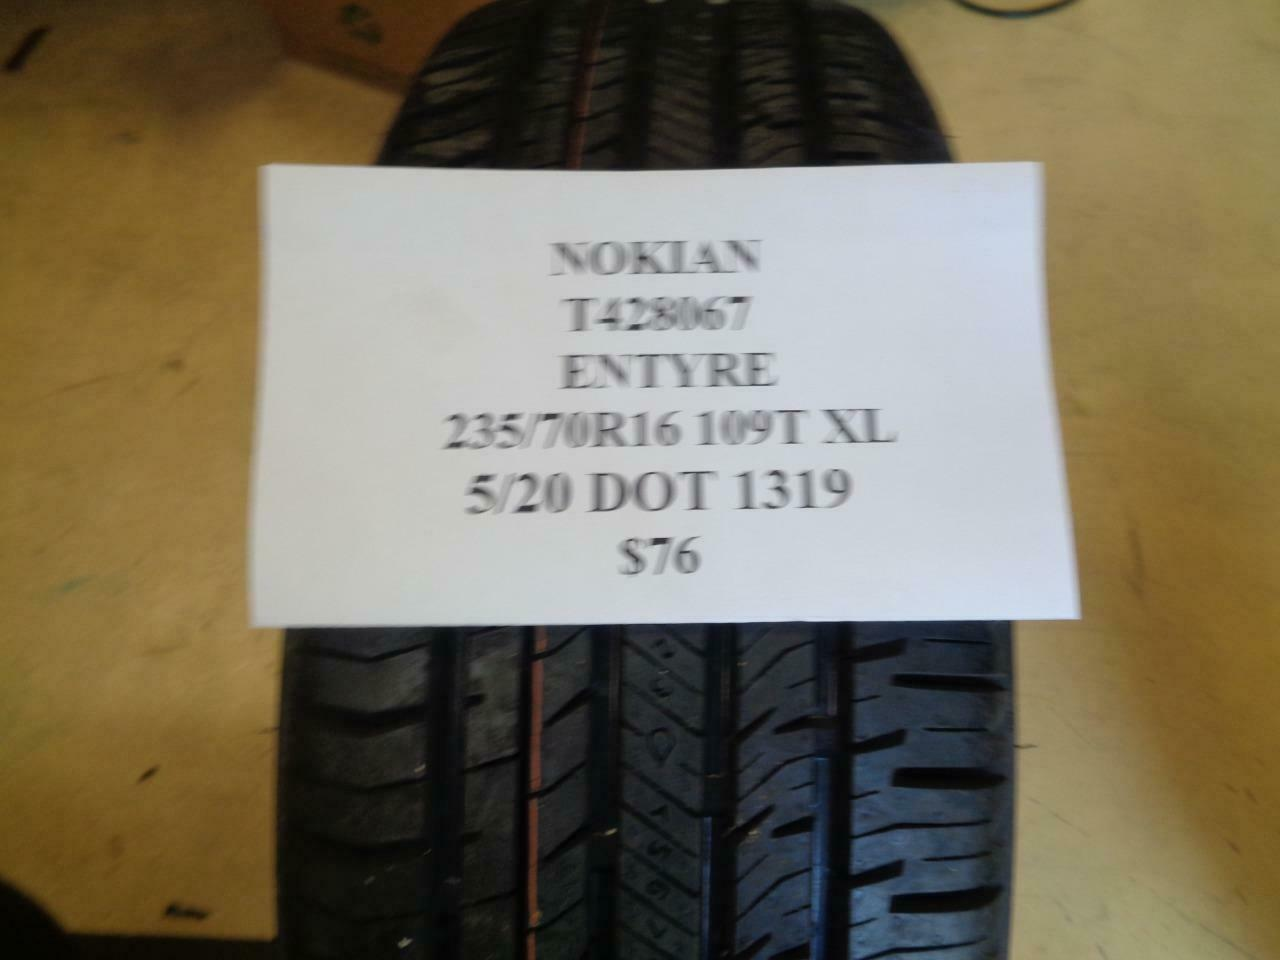 Nokian ENTYRE All Season Radial Tire-235//70R16 109T XL-ply